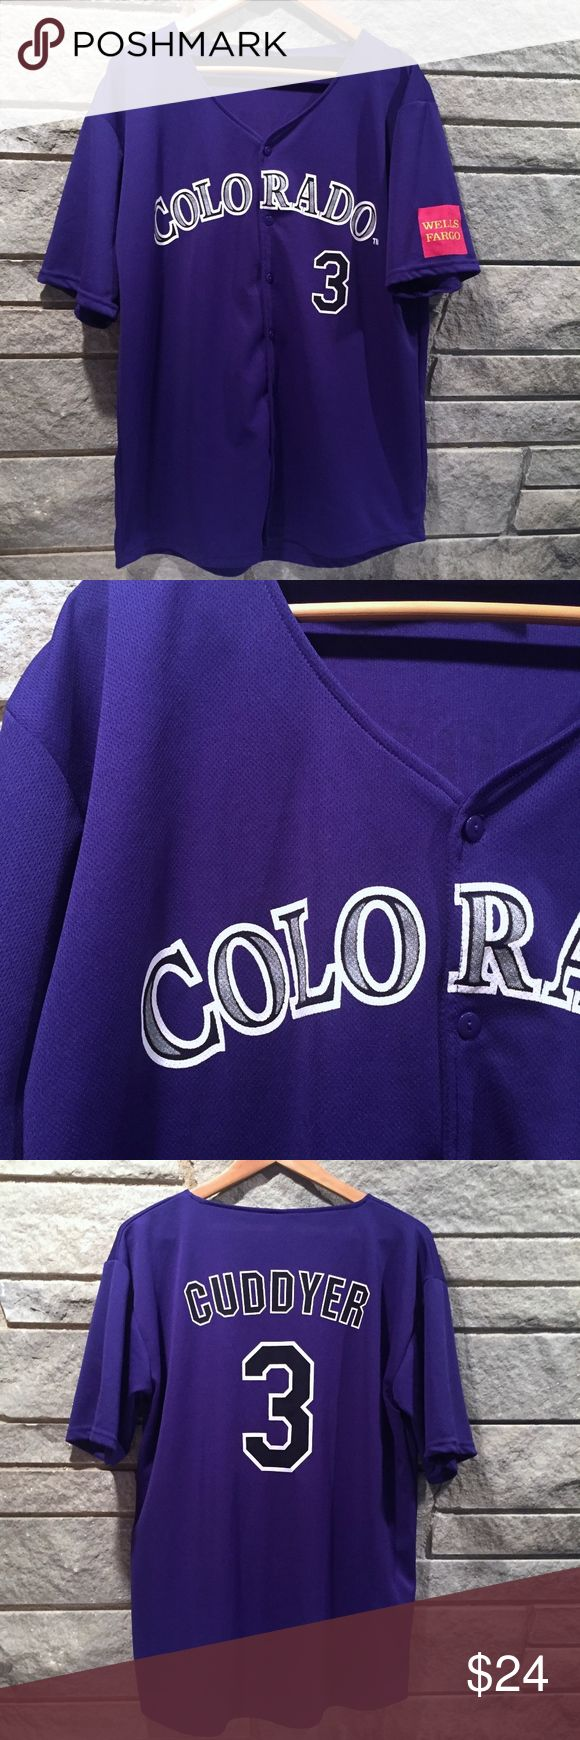 Colorado Rockies Michael Cuddyer #3 Button Jersey Colorado Rockies purple Michael Cuddyer button front jersey. One sleeve has Wells Fargo, the other is blank.  Size: Extra Large [XL] Condition: Good used condition - no holes, stains, or rips.  Brand: Unbranded but sponsored by Wells Fargo (logo on sleeve)   Feel free to send me any questions/comments or your best offer! Thanks for looking. Shirts